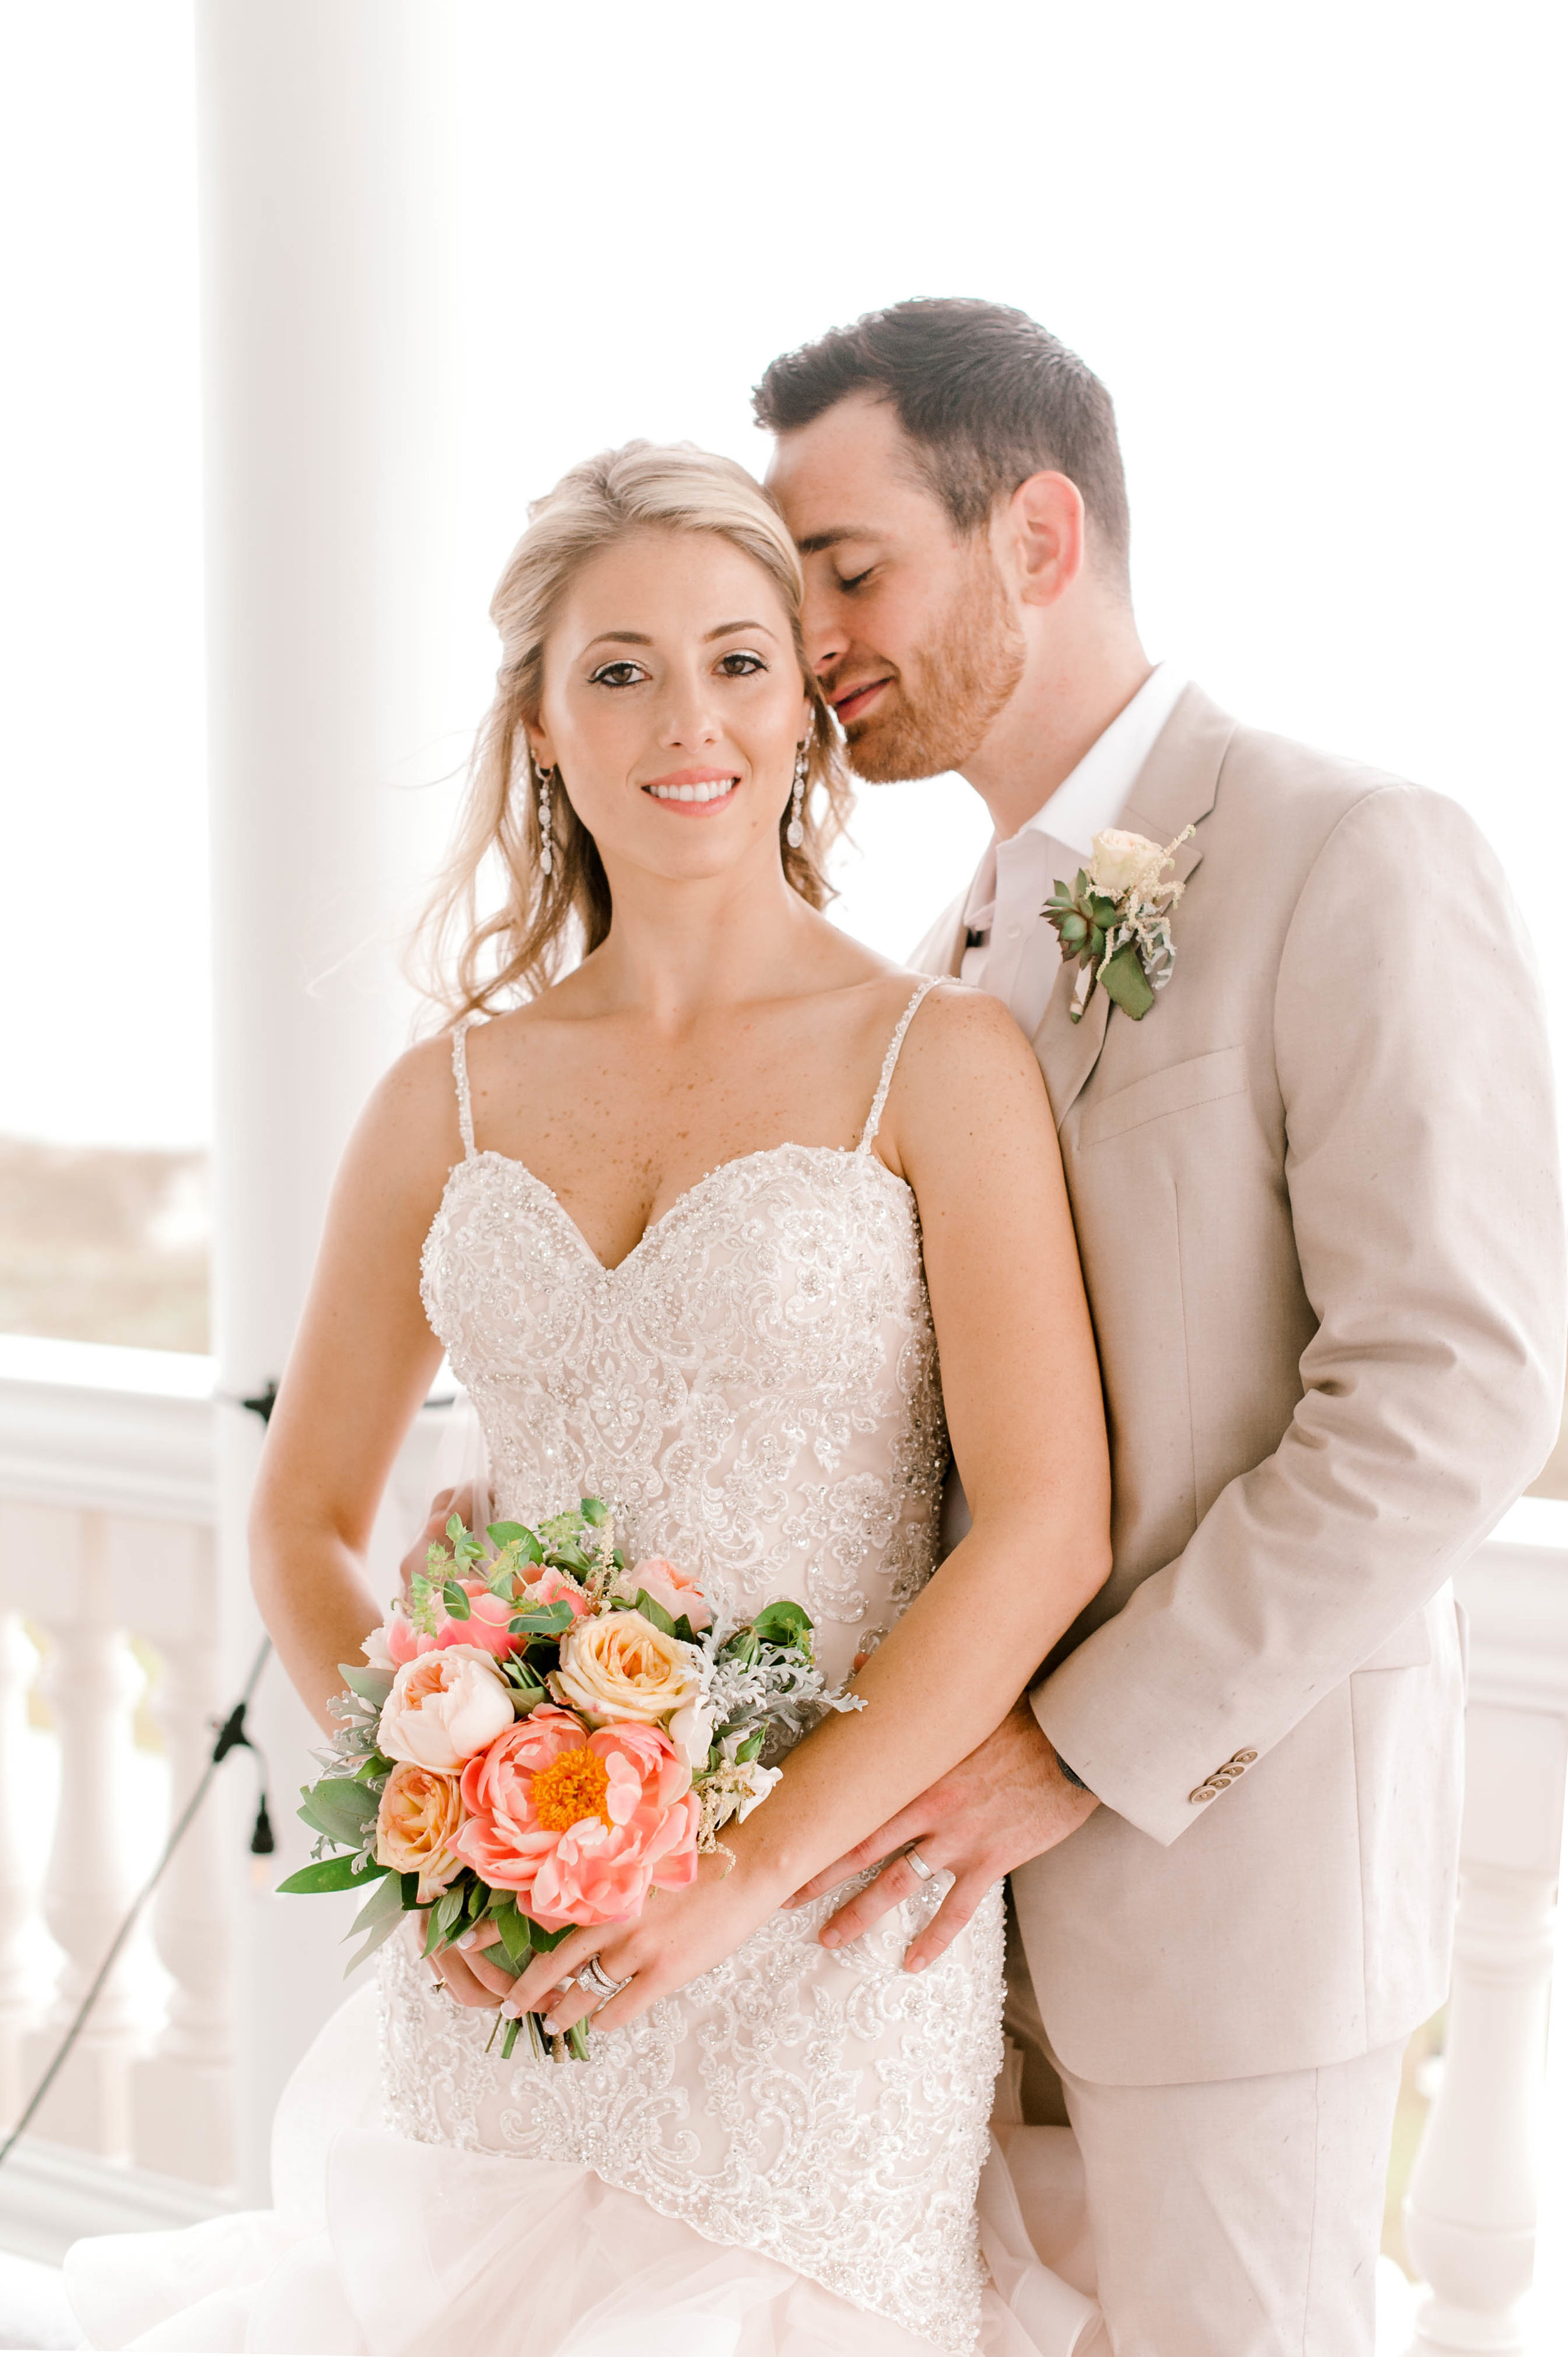 Sunset Beach, SC Wedding - Sunset Beach, South Carolina Beach Wedding. Hosanna Wilmot Photographer is a Myrtle Beach Wedding Photographer specializing in Wedding Photography